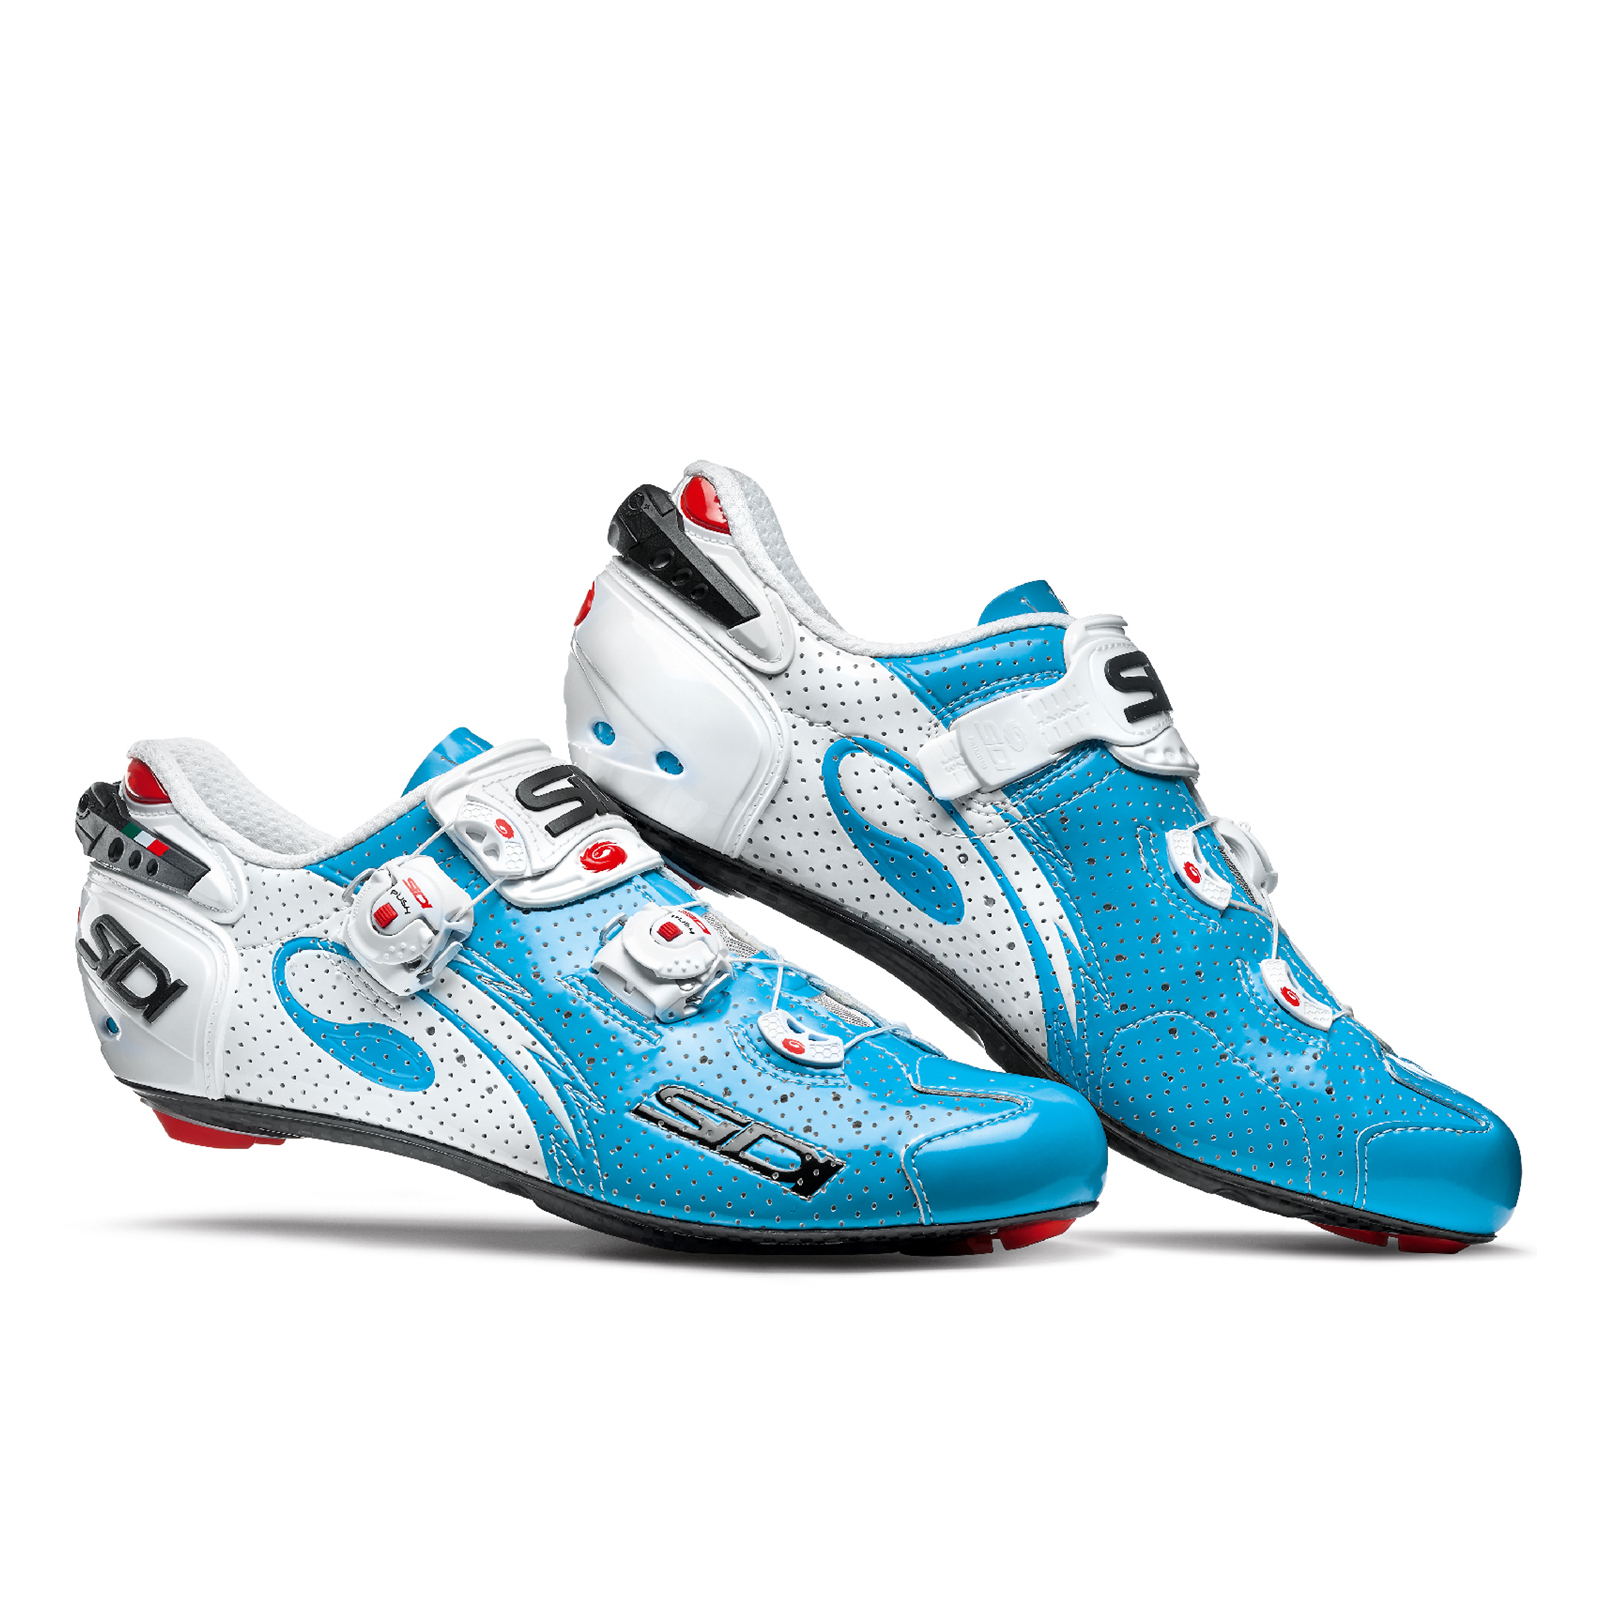 Beautiful Sidi Wire Ensign - Wiring Schematics and Diagrams Pictures ...